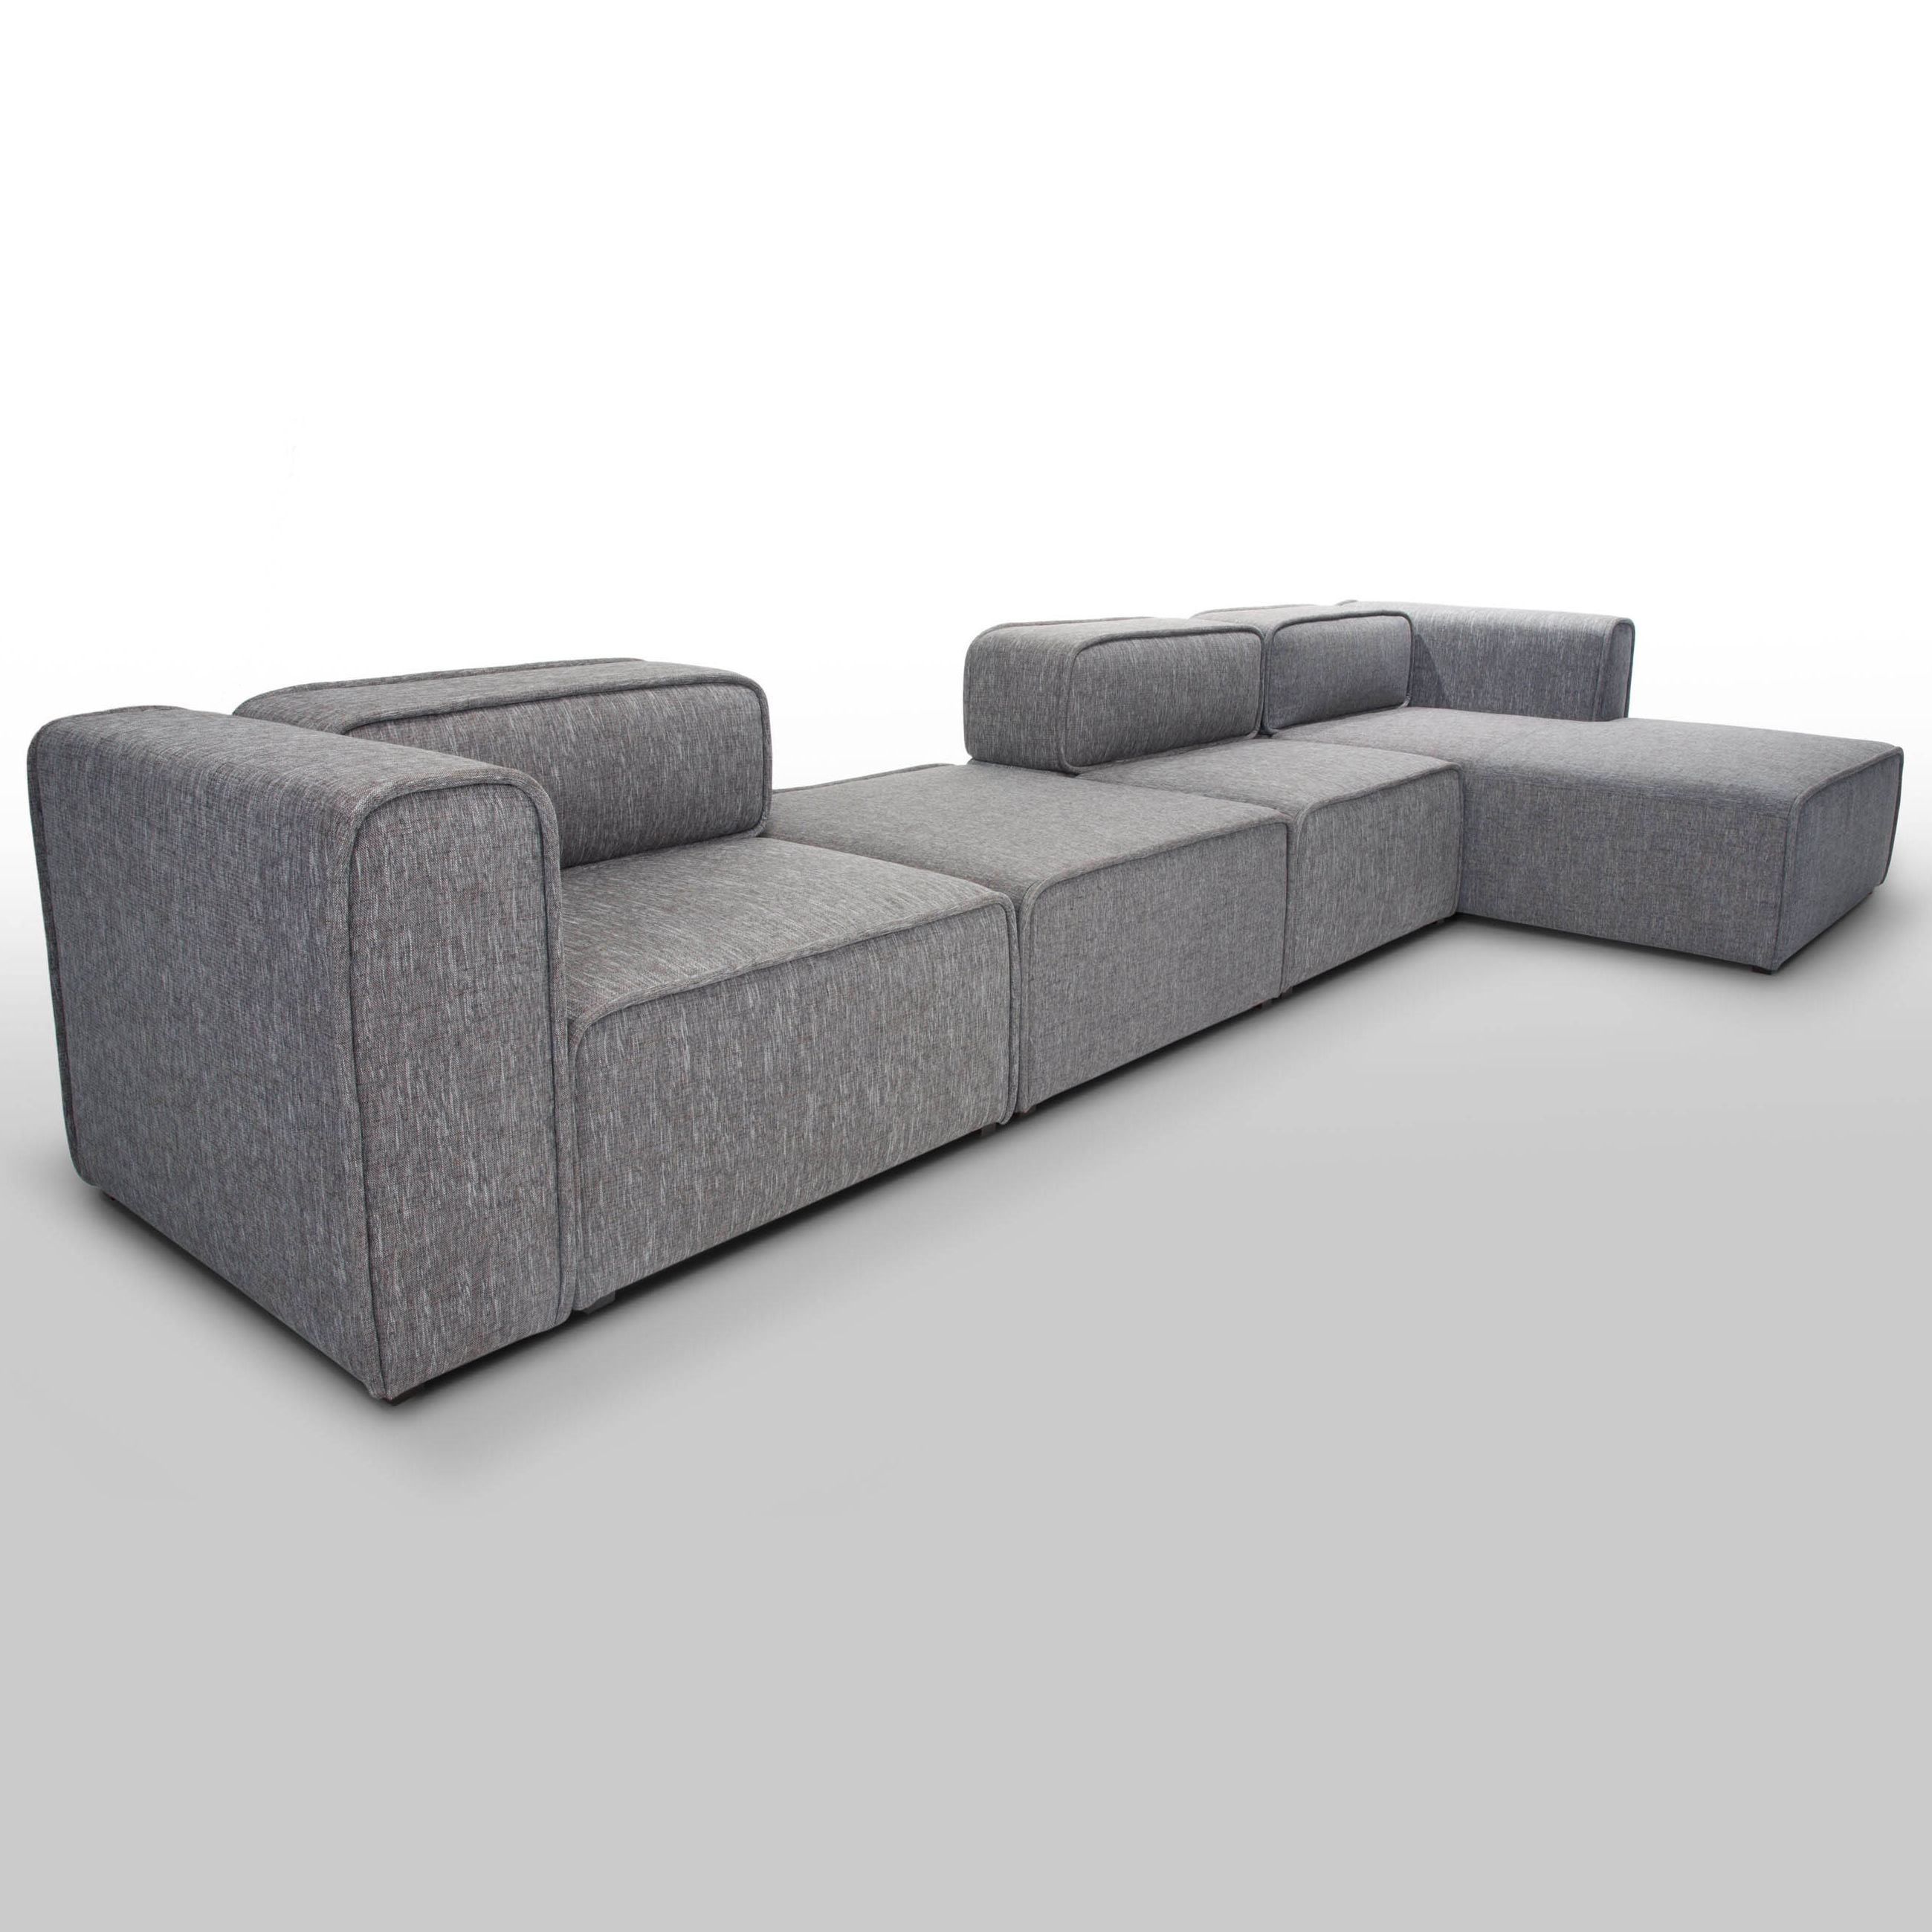 Tiffany Leather Sectional 1 arm sofa and chaise lounge by Gamma